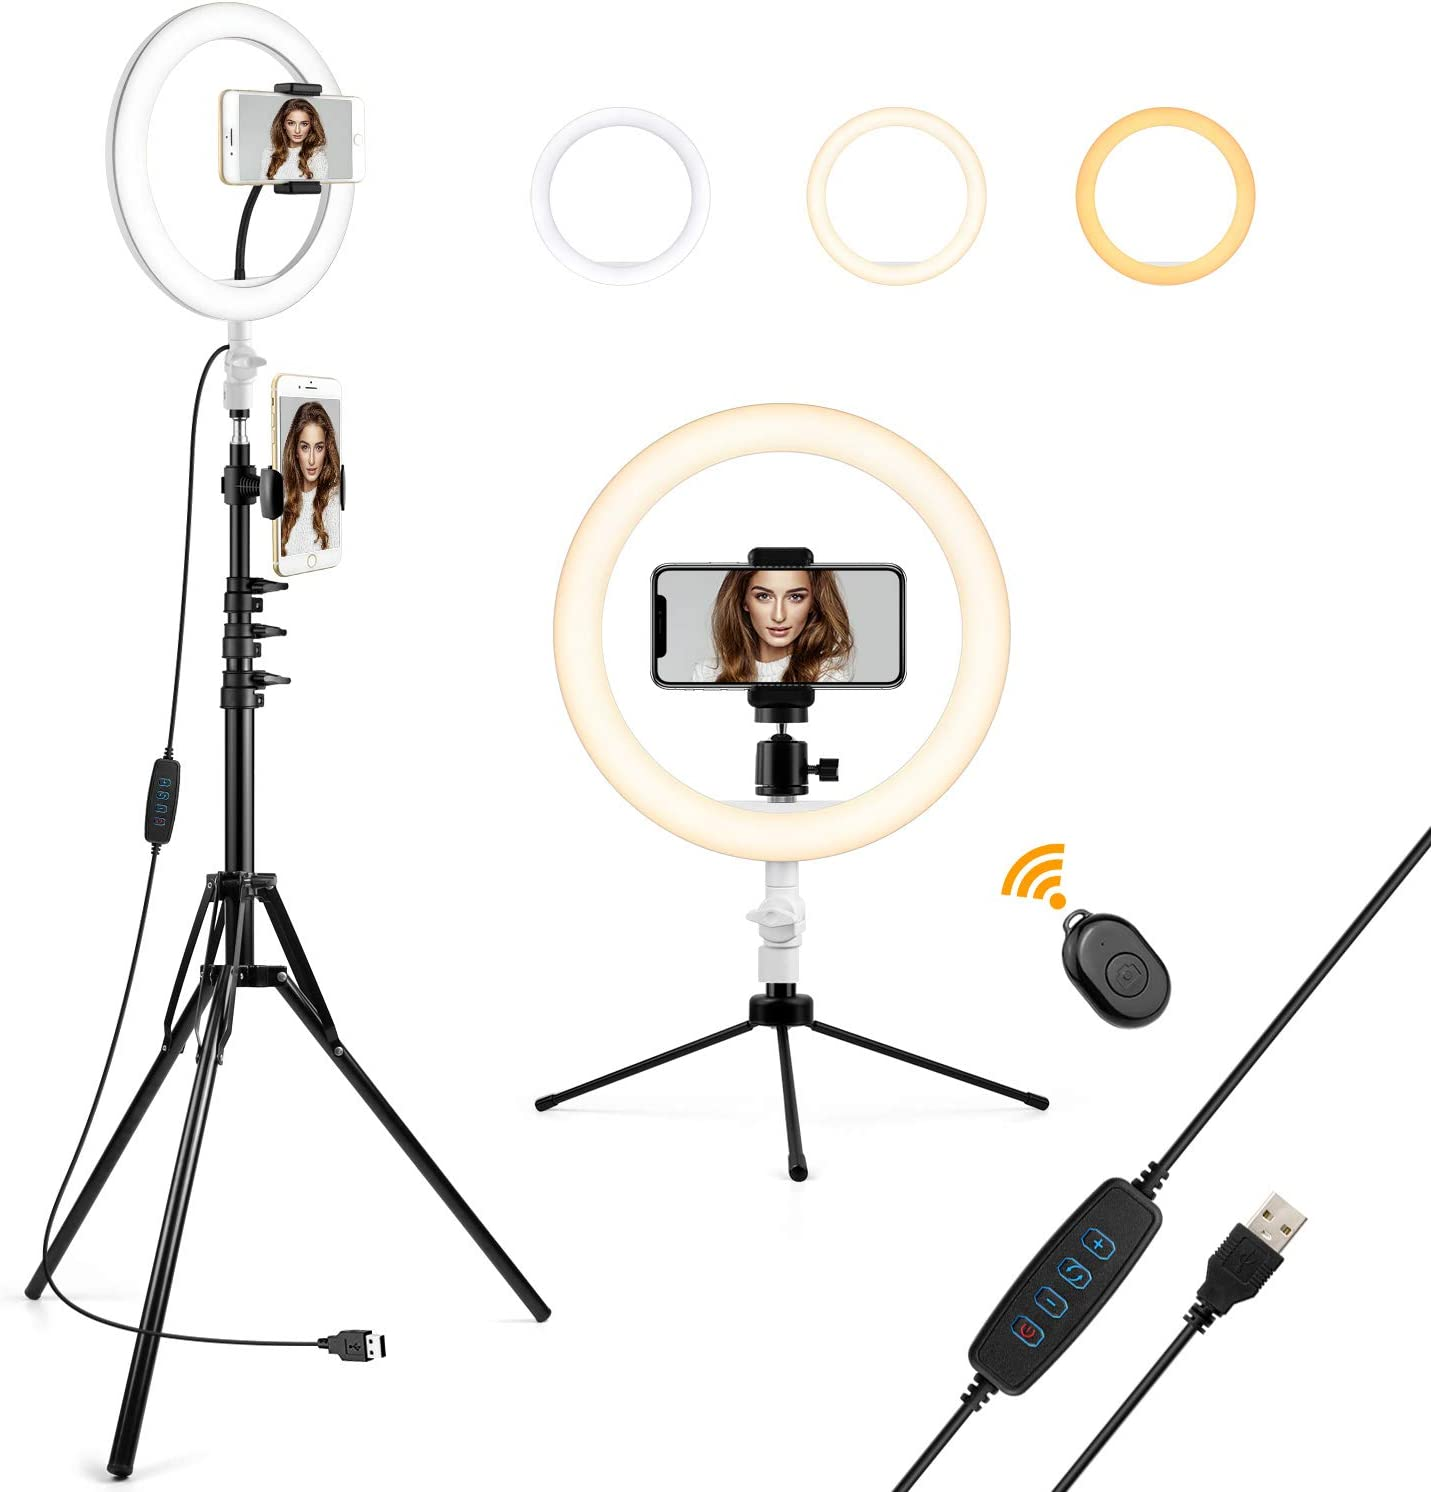 """Led Ring Light with Stand 10"""" Circle Lamp OldShark Dimmable Camera Ringlight with Phone Tripod for iPhone Photography YouTube Video Makeup Live Streaming"""